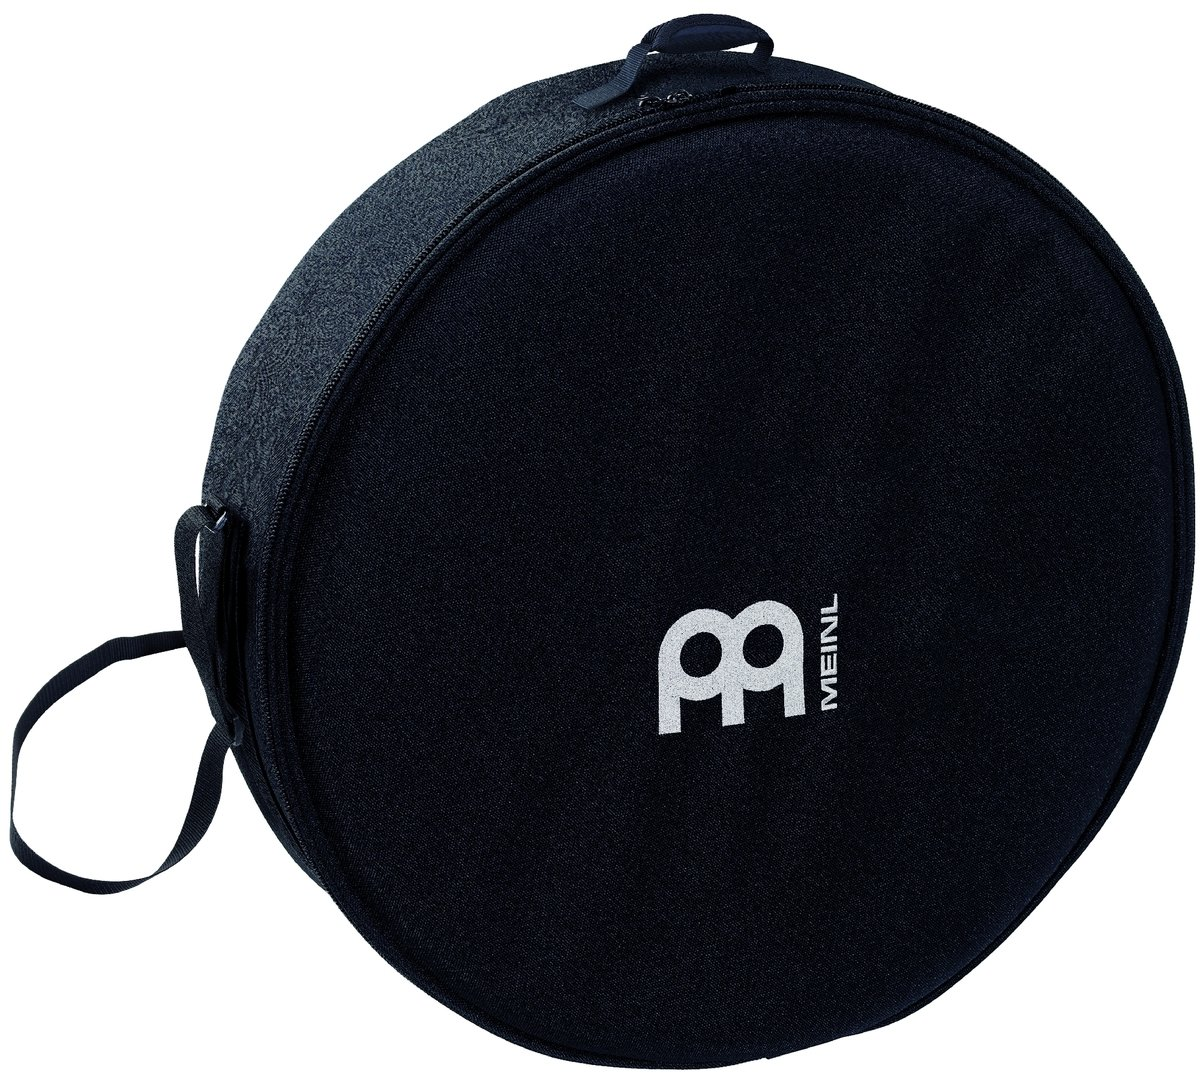 Meinl Percussion MFDB-22 Frame Drum Bag 22-Inch, Black